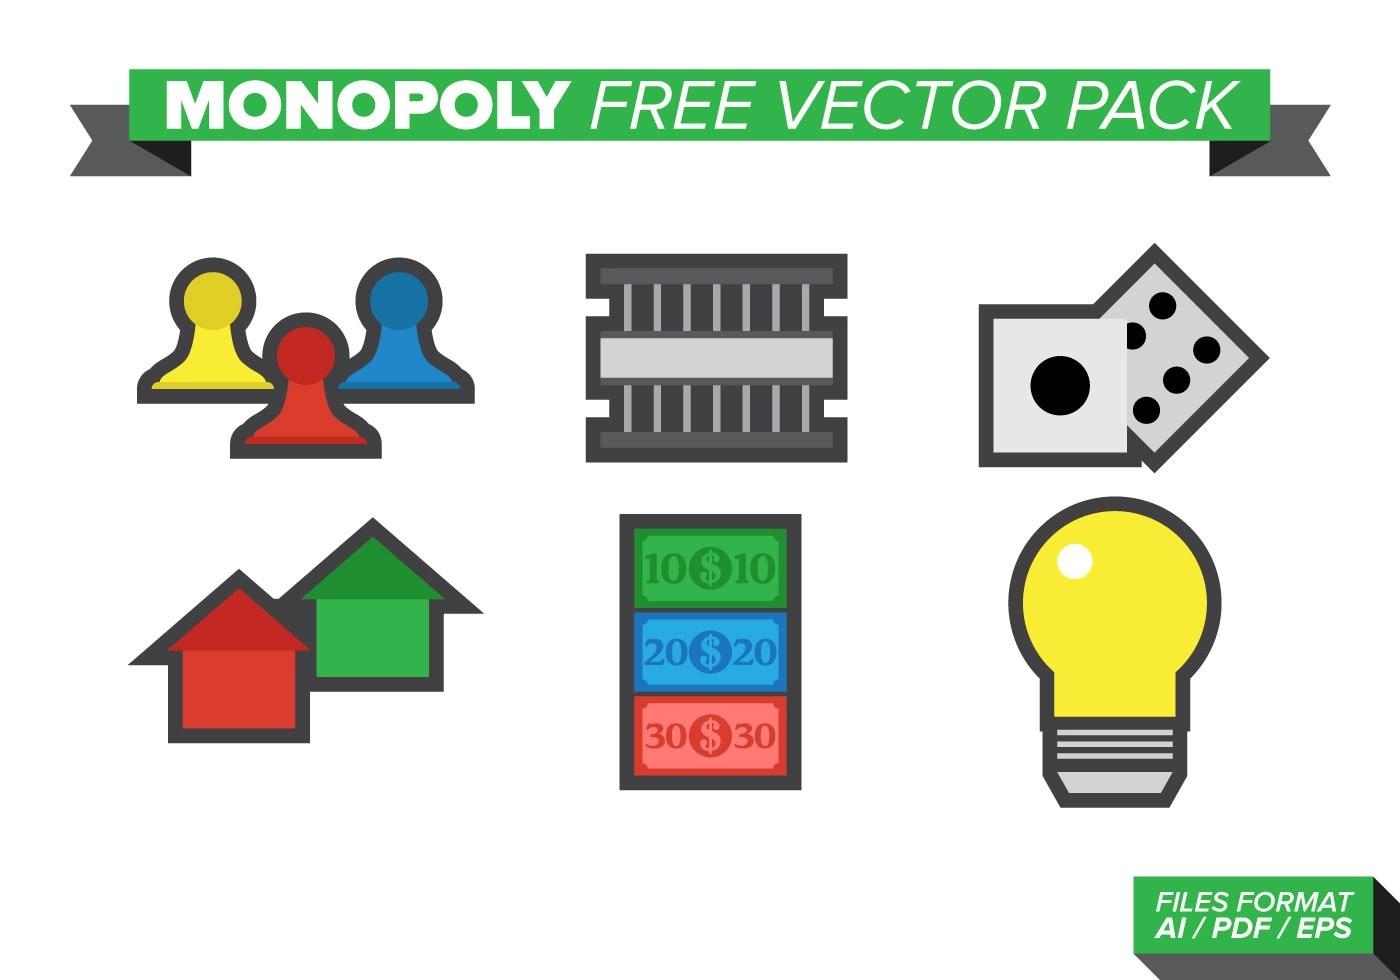 Monopoly Game Vector Monopoly Free Vector Pack Download Free Vectors Clipart